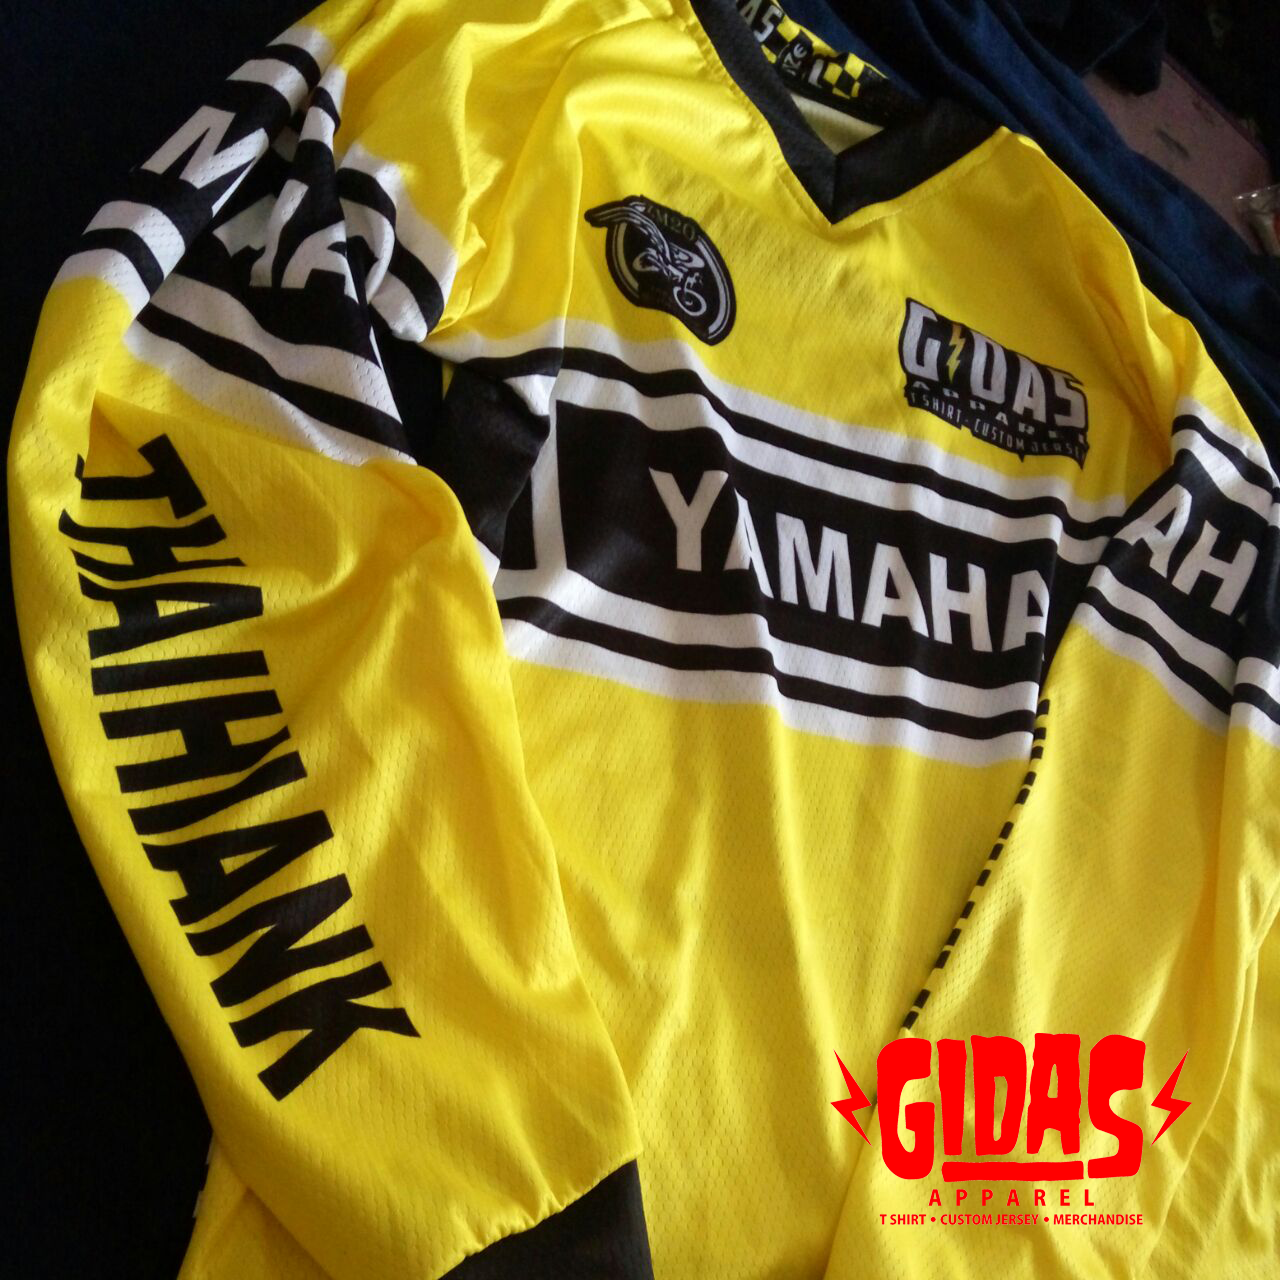 Gidas Apparel Custom Jersey Vintage Motocross Jersey Whatsapp 082137240629 Email Gidasapp Gmail Com Vintage Mx Jersey Vintage Motocross Jersey Mx Jersey